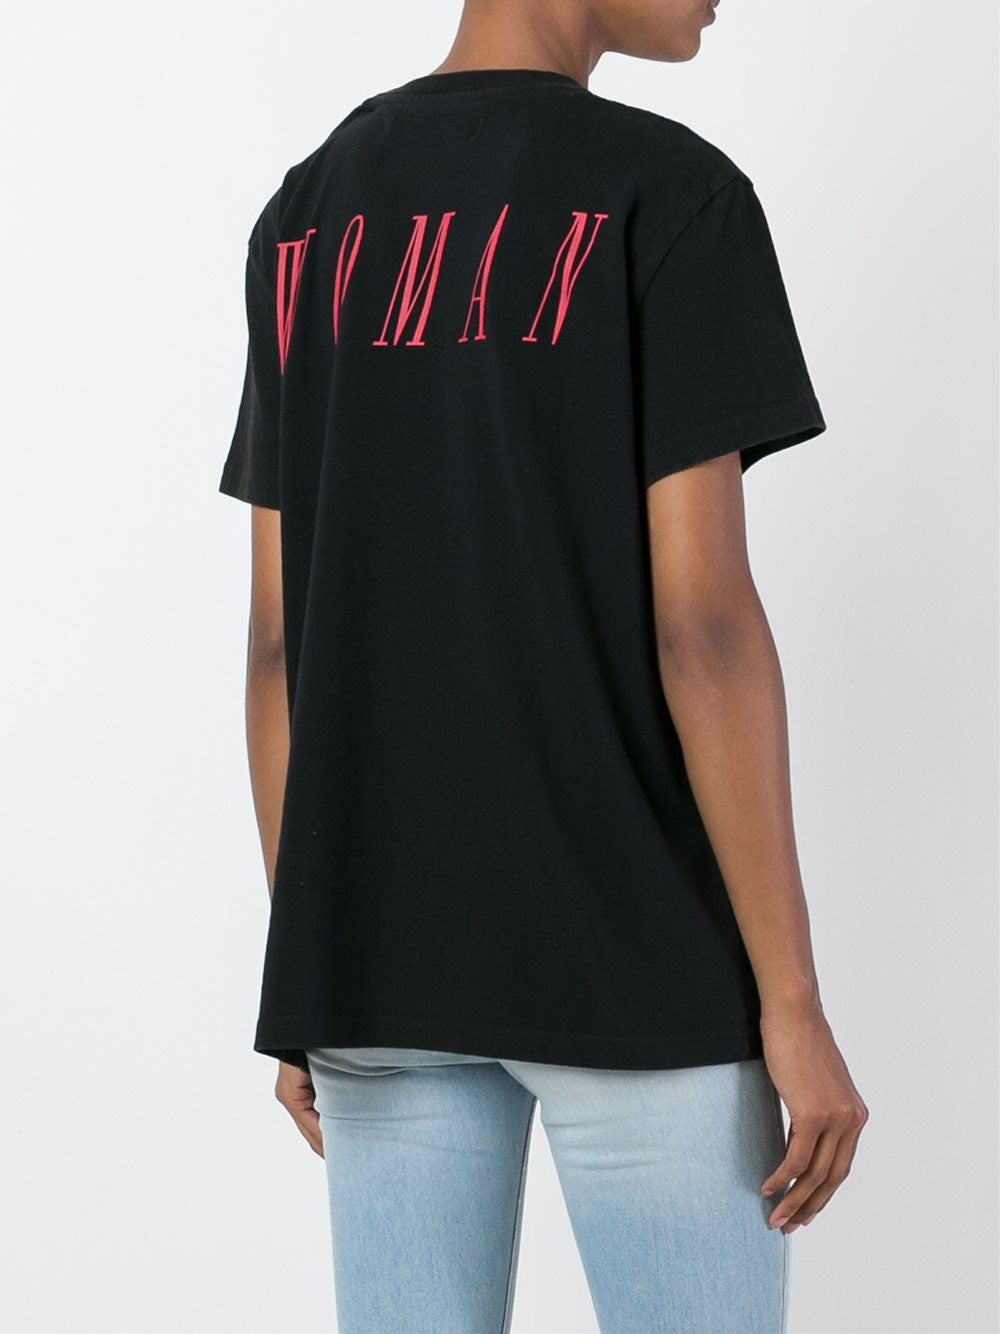 Table Tho? Tee| OWAA010F16185122